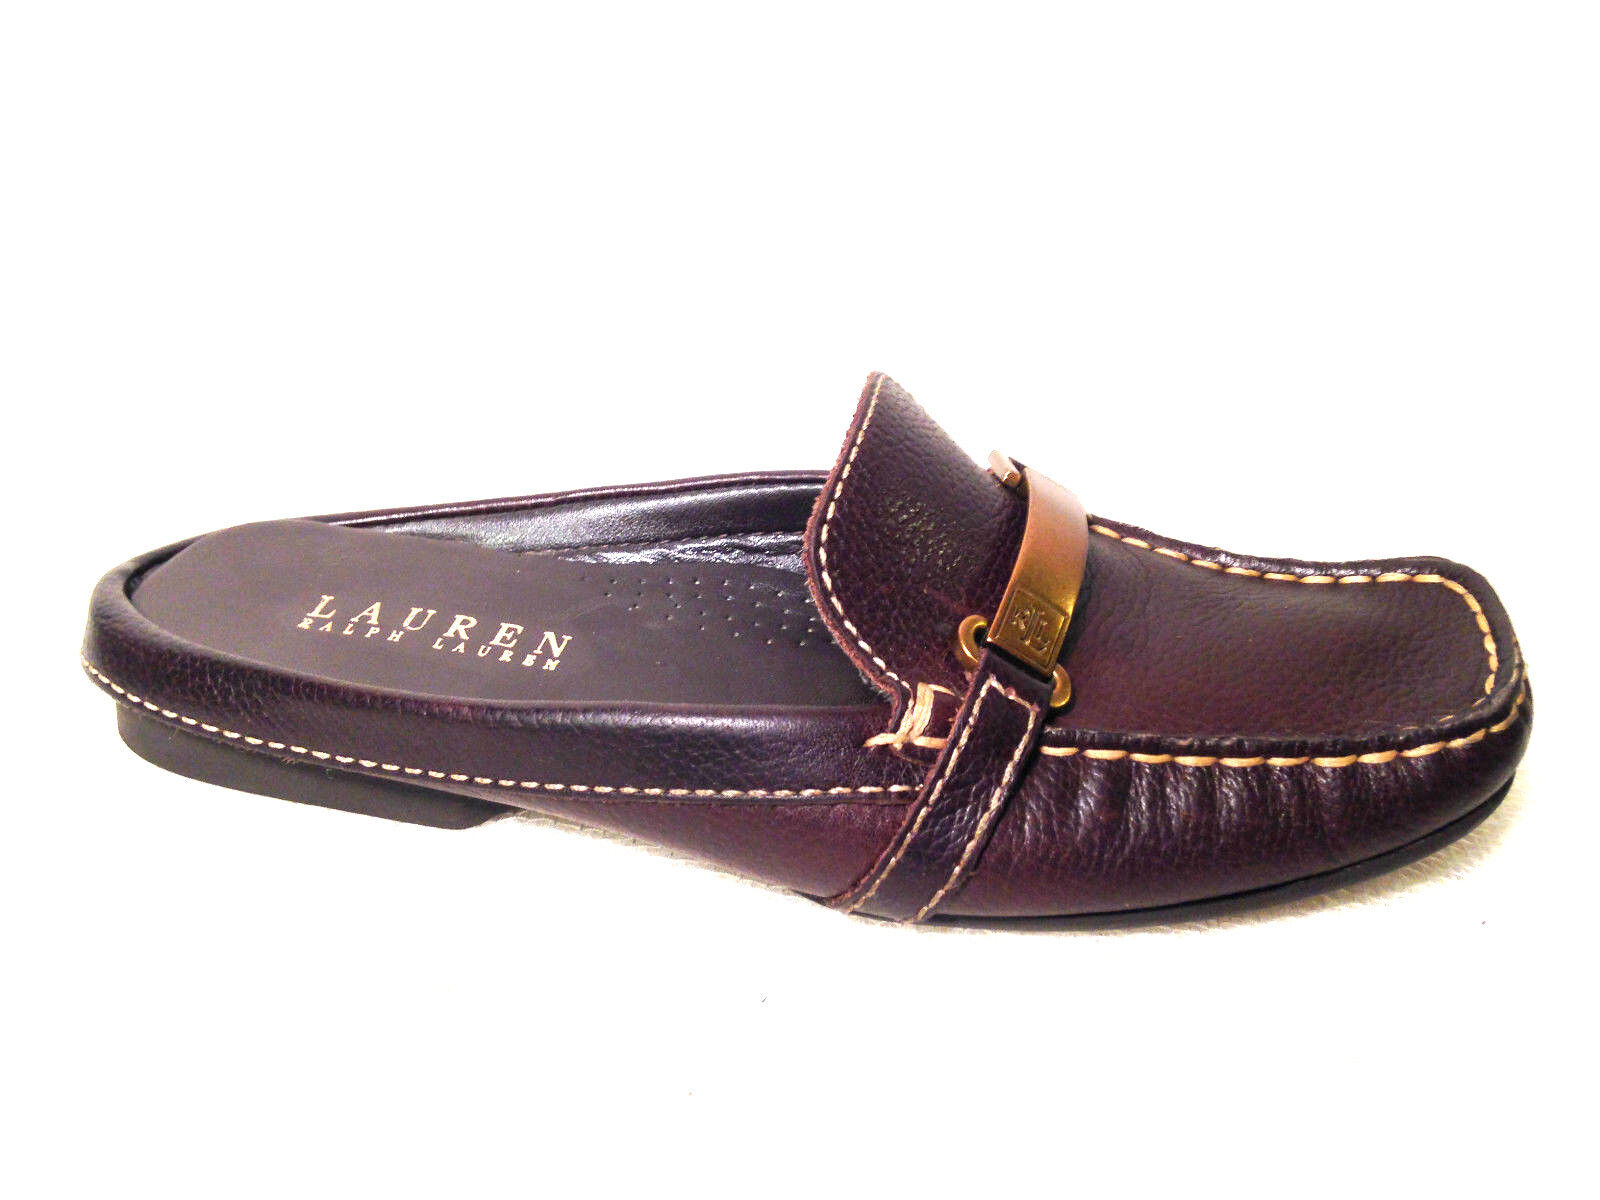 Ralph Lauren clogs clogs Lauren loafers size 6 U.S. Brown 9f1c4f